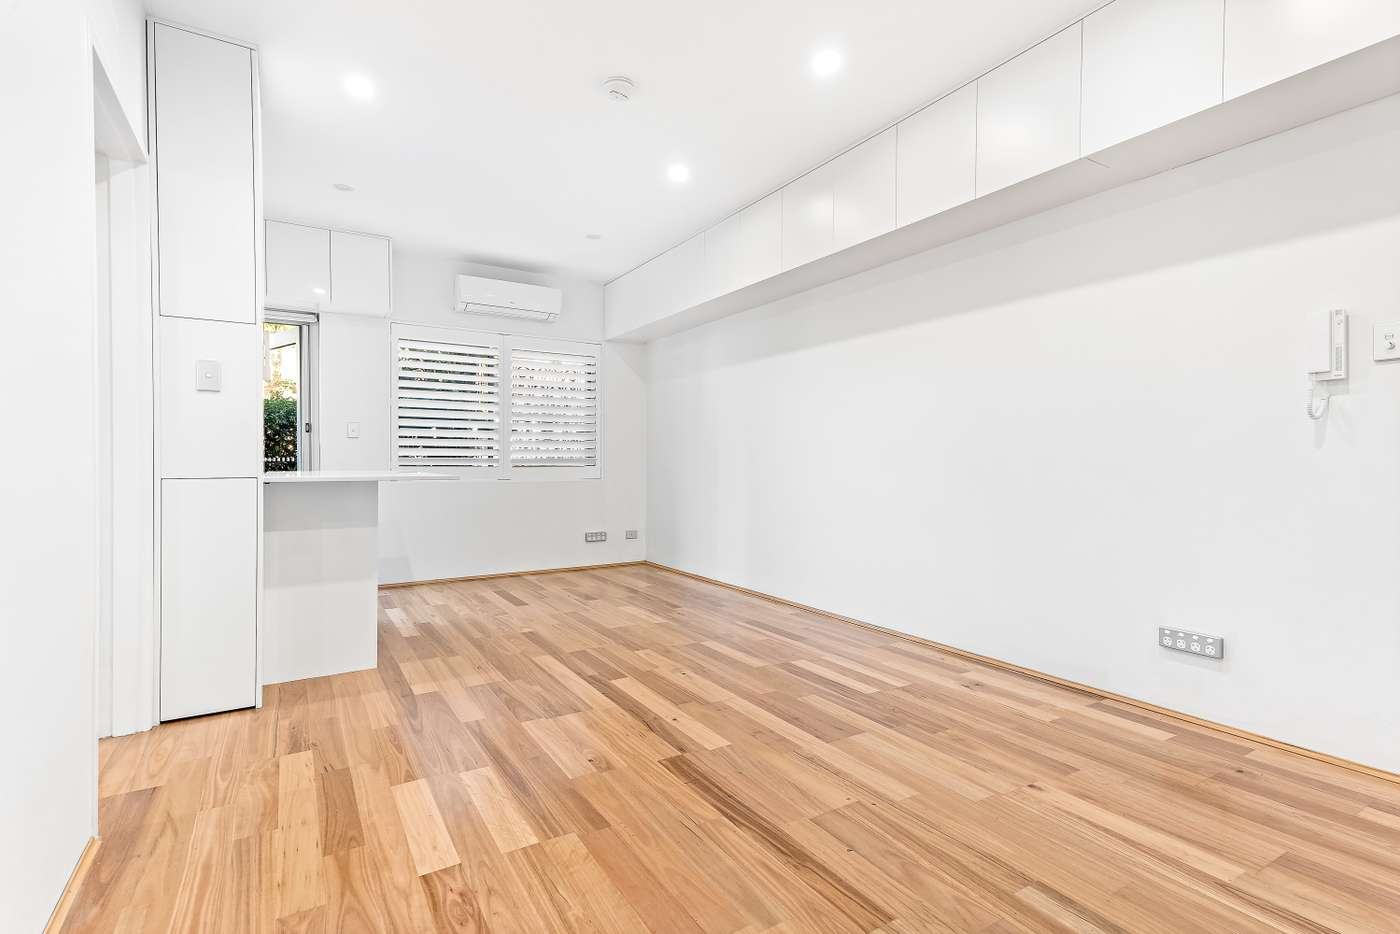 Main view of Homely apartment listing, 4/26 Albermarle St, Newtown NSW 2042